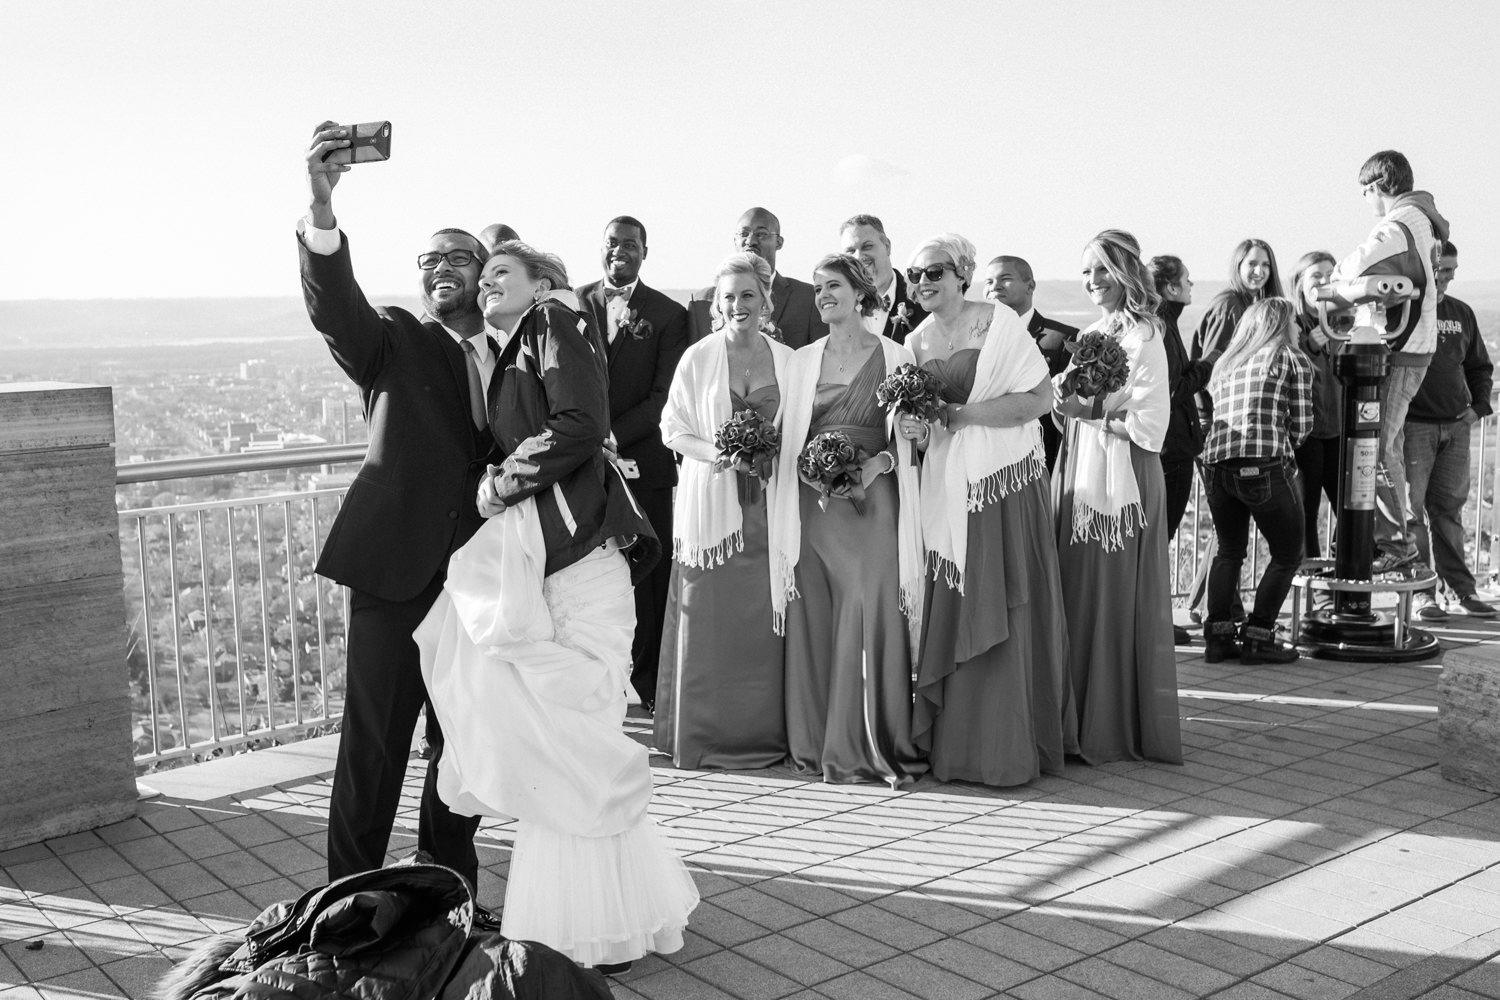 Wedding party selfie on the bluff in La Crosse, WI.